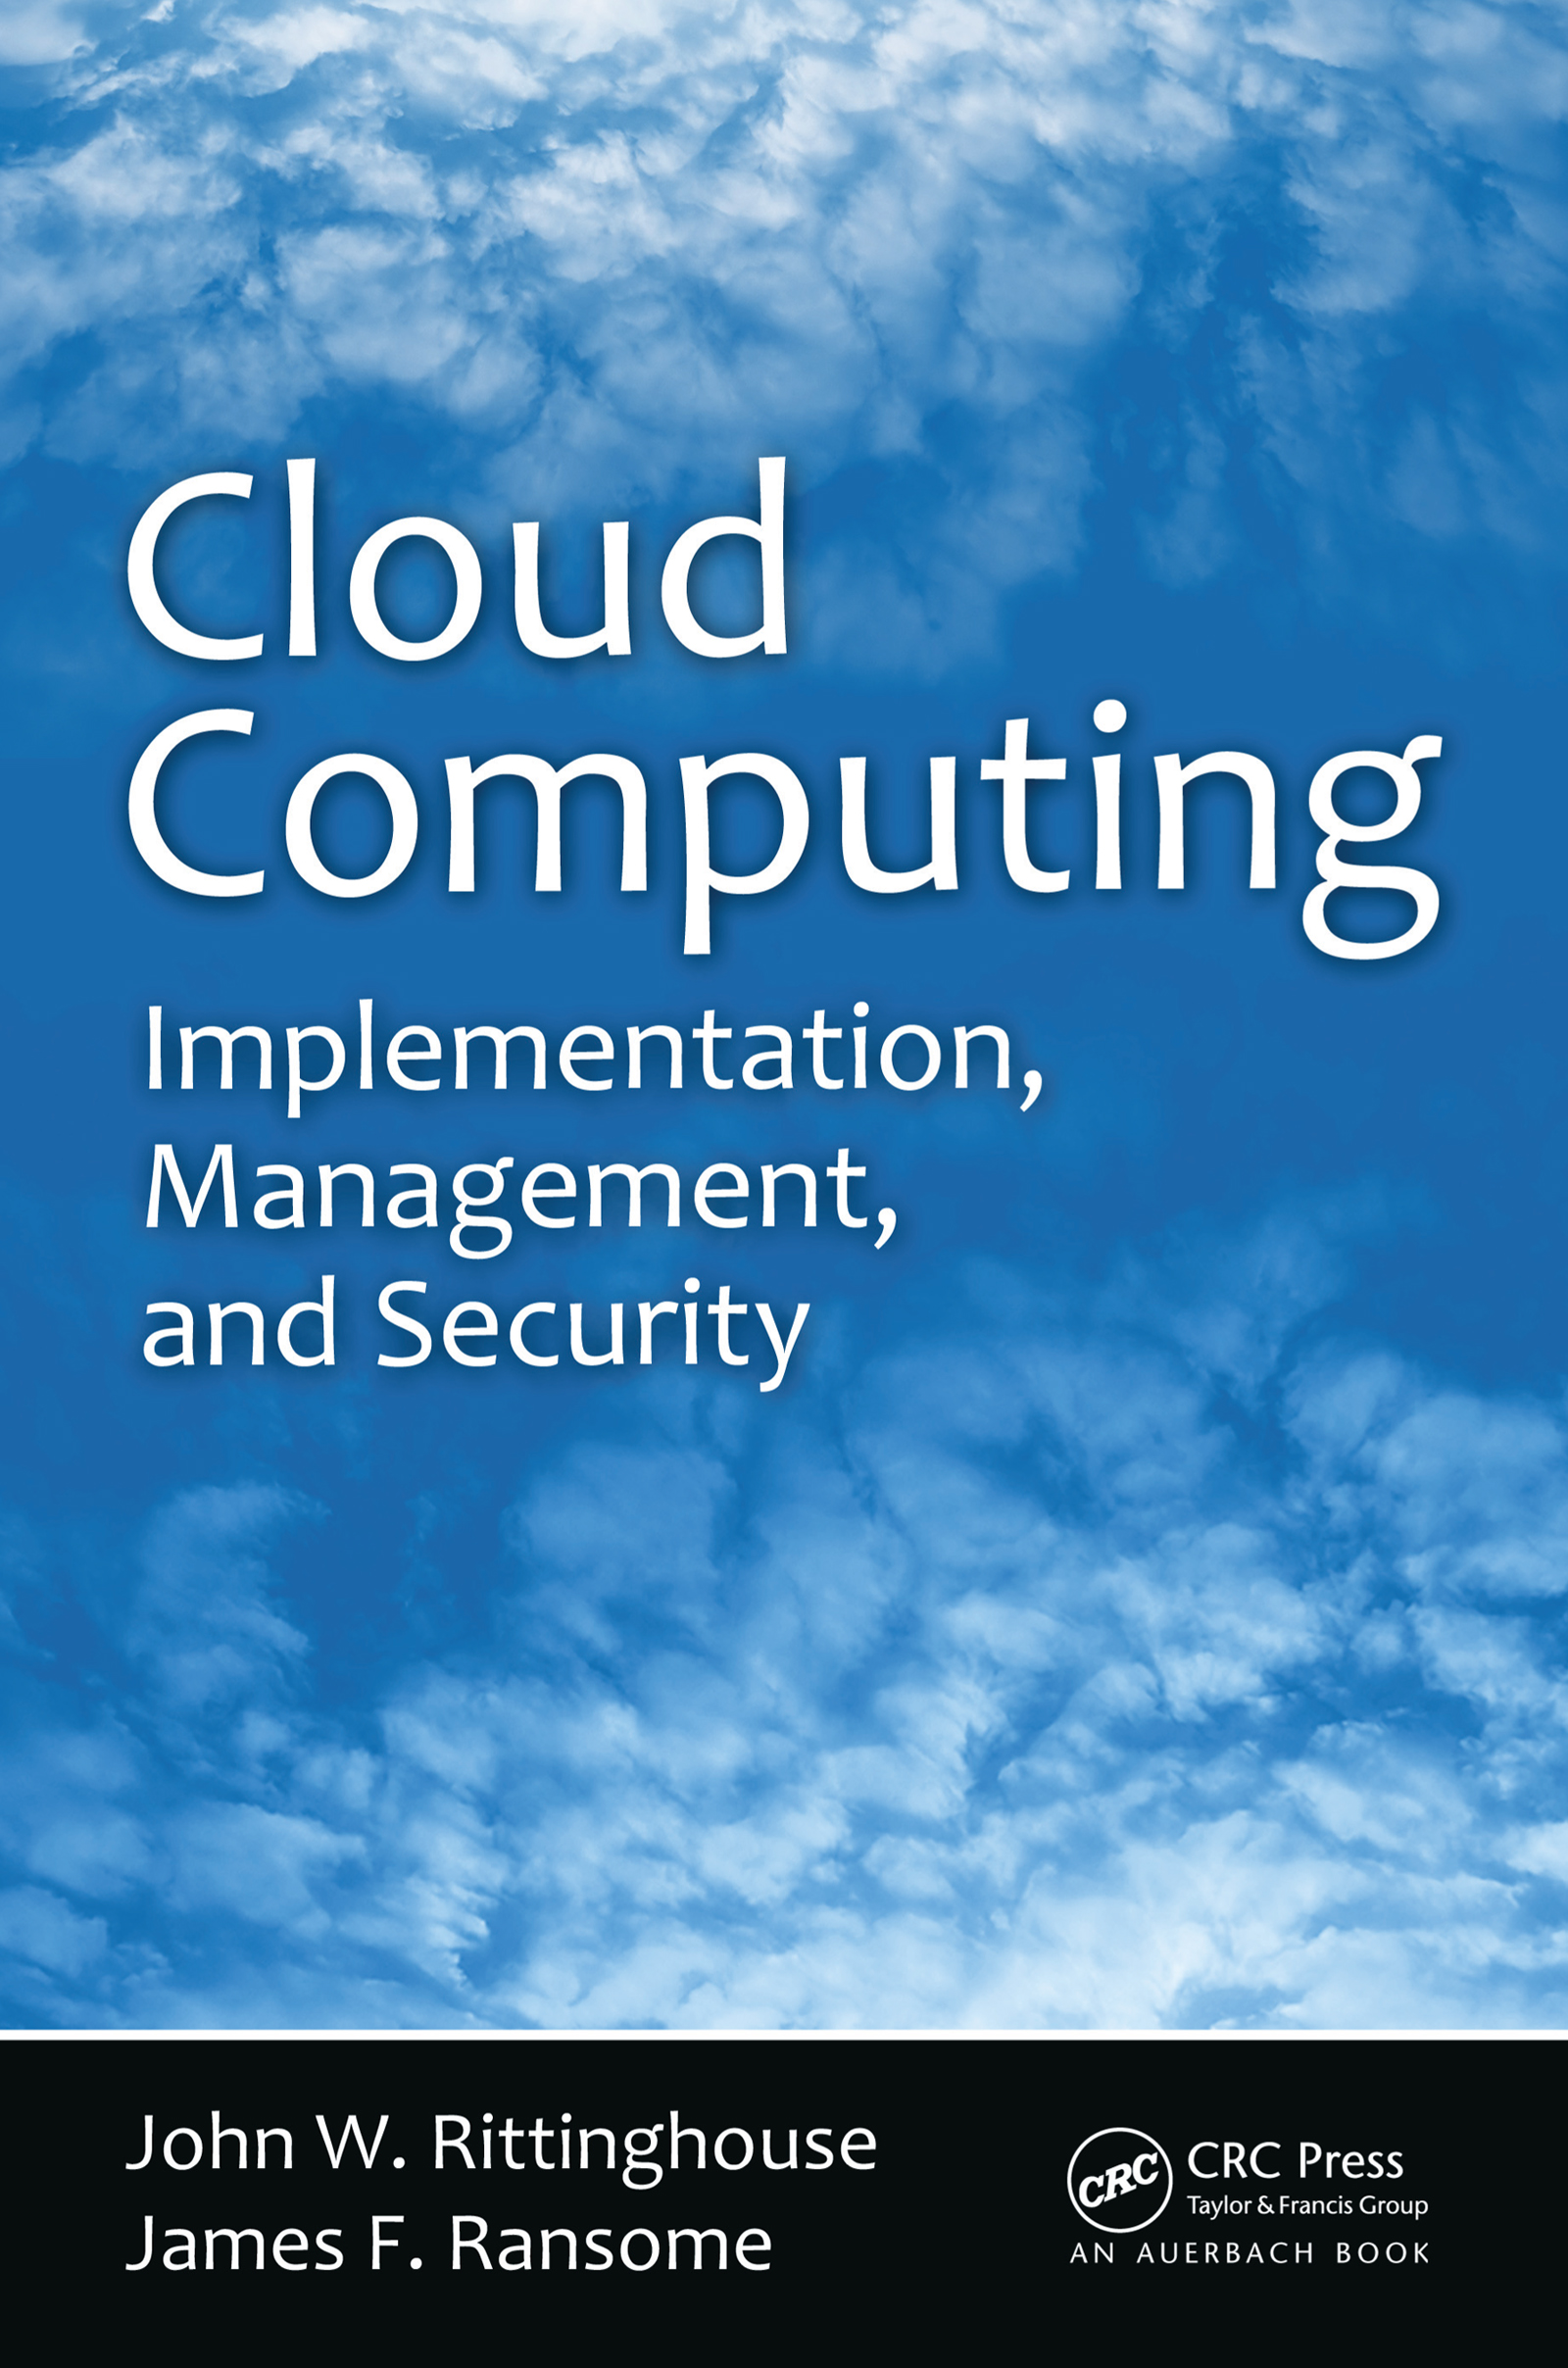 Download Ebook Cloud Computing by John W. Rittinghouse Pdf